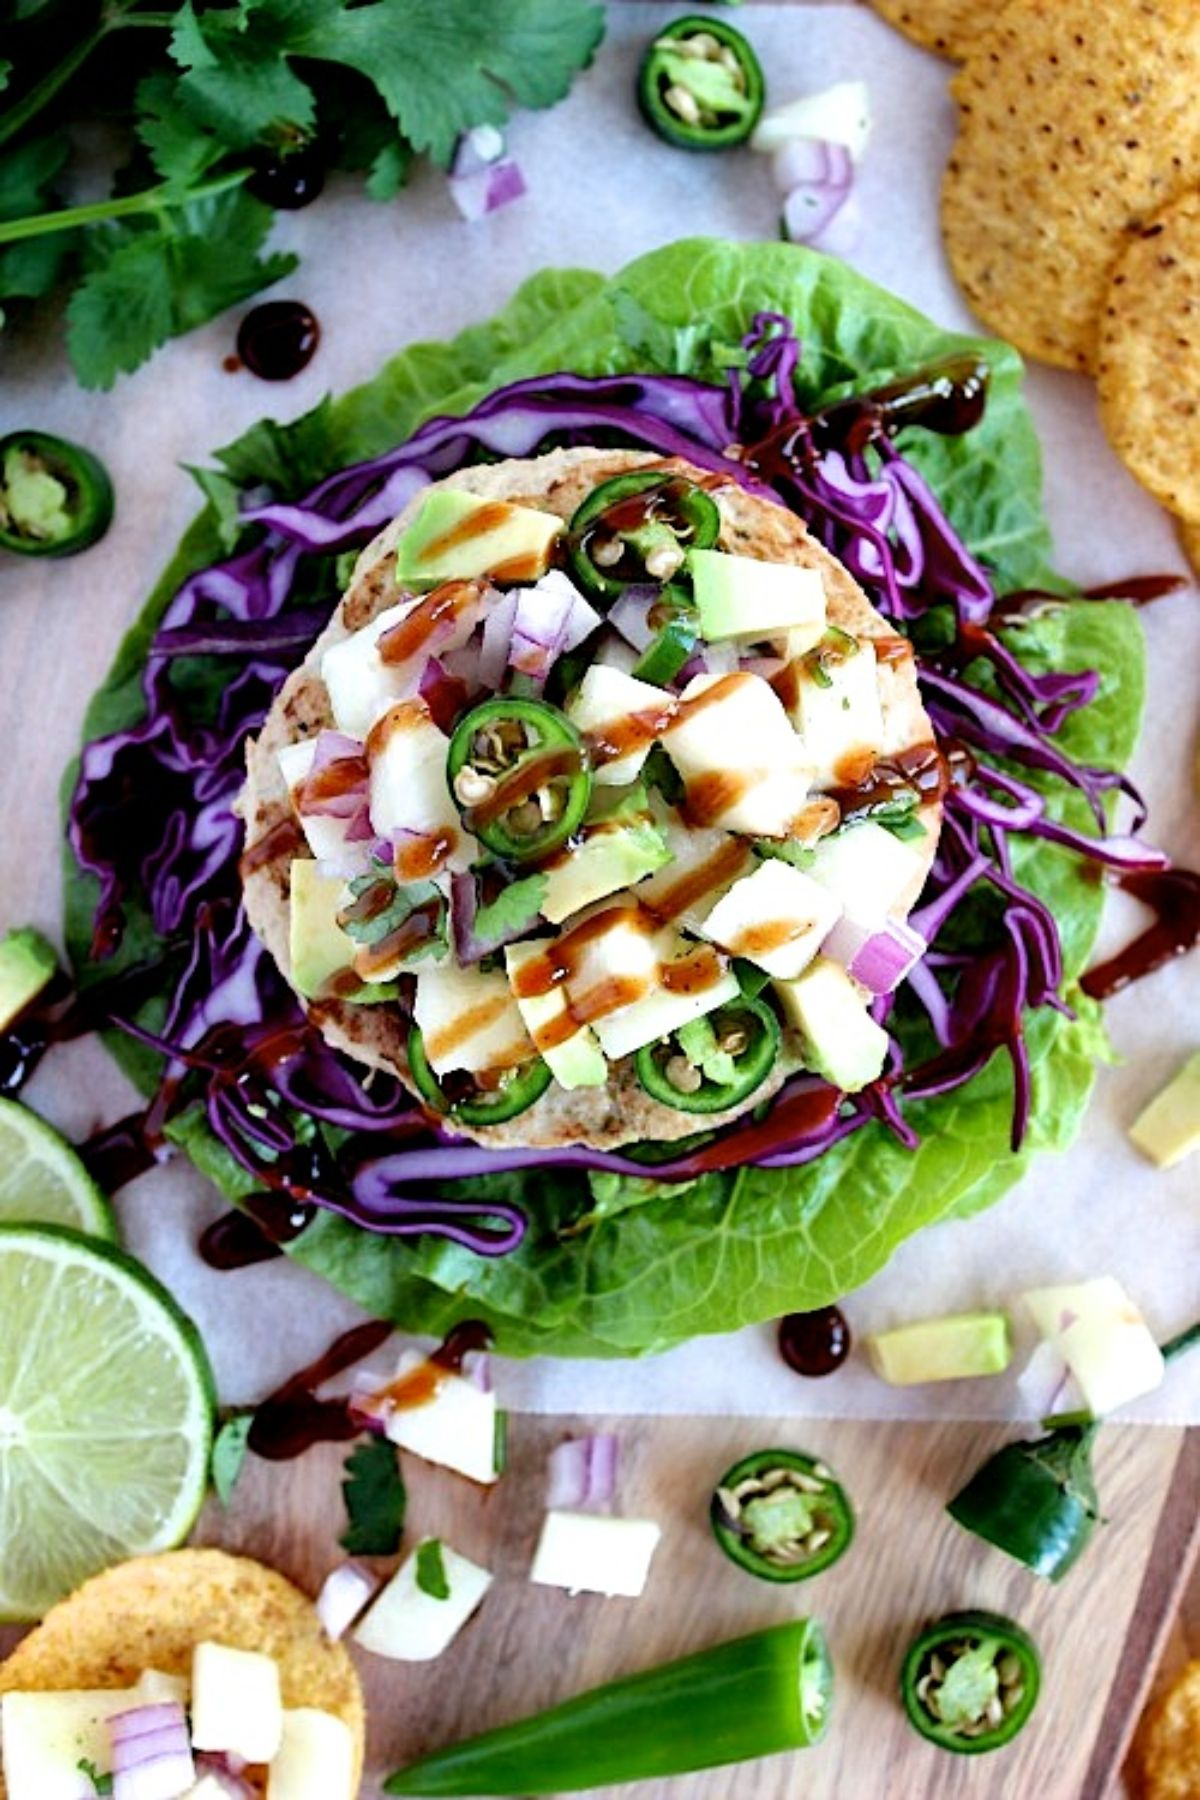 A lettuce leaf acts as a platter for a turkey burger topped with cheese, jalapeno slices and a brown sauce. Ingredients are scattered around it